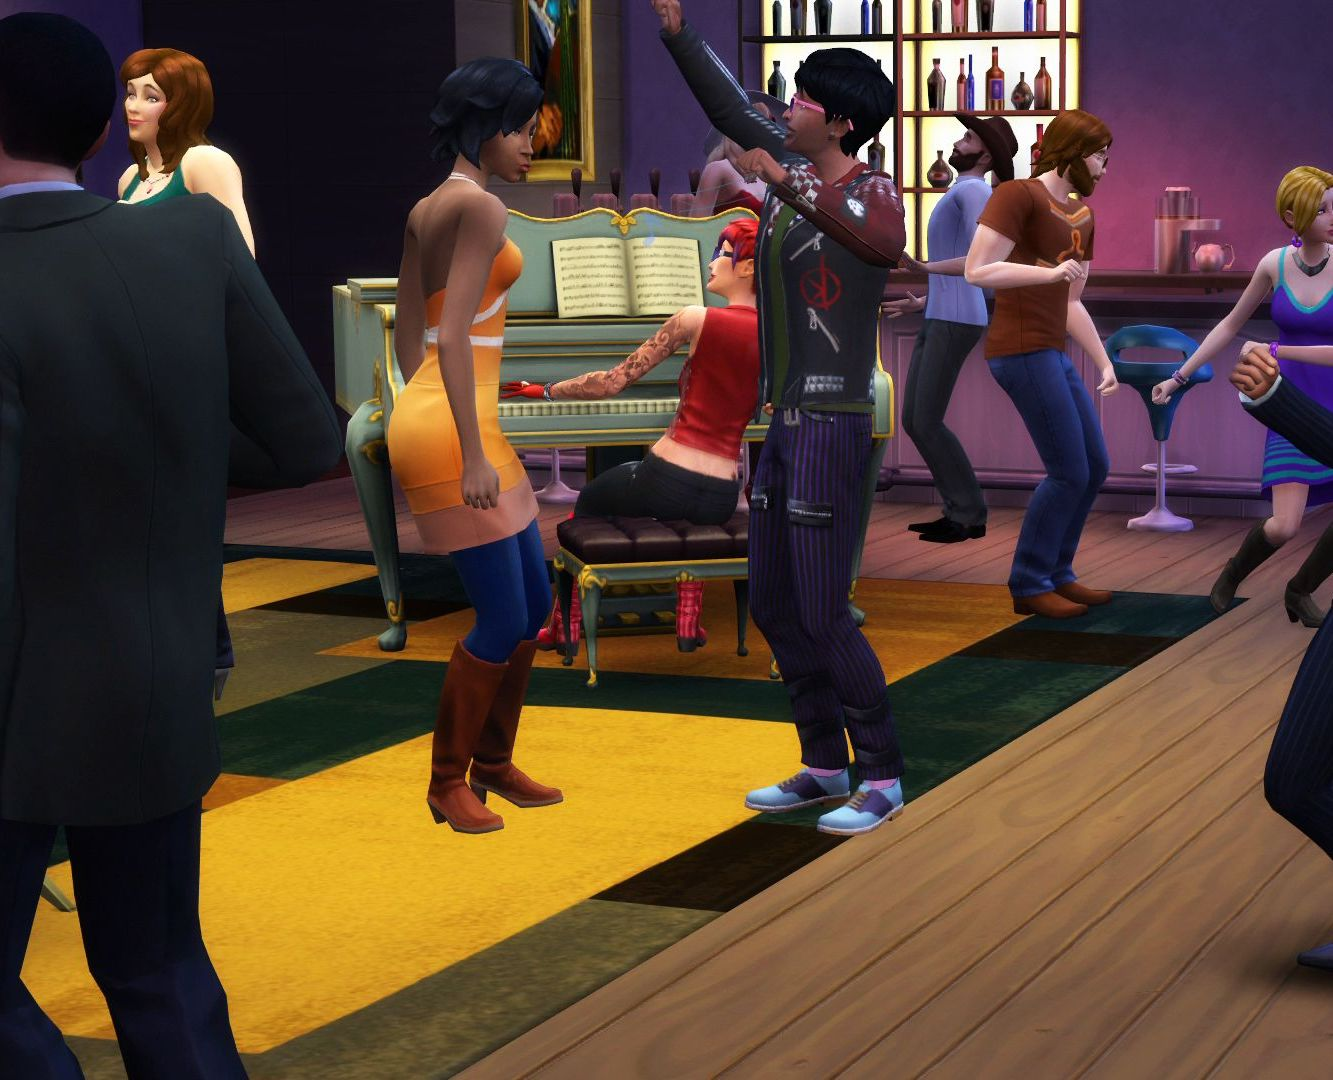 Sims3 02 People Describing The Worst Things They've Ever Done To Their Sims Proves Humanity Is The Worst